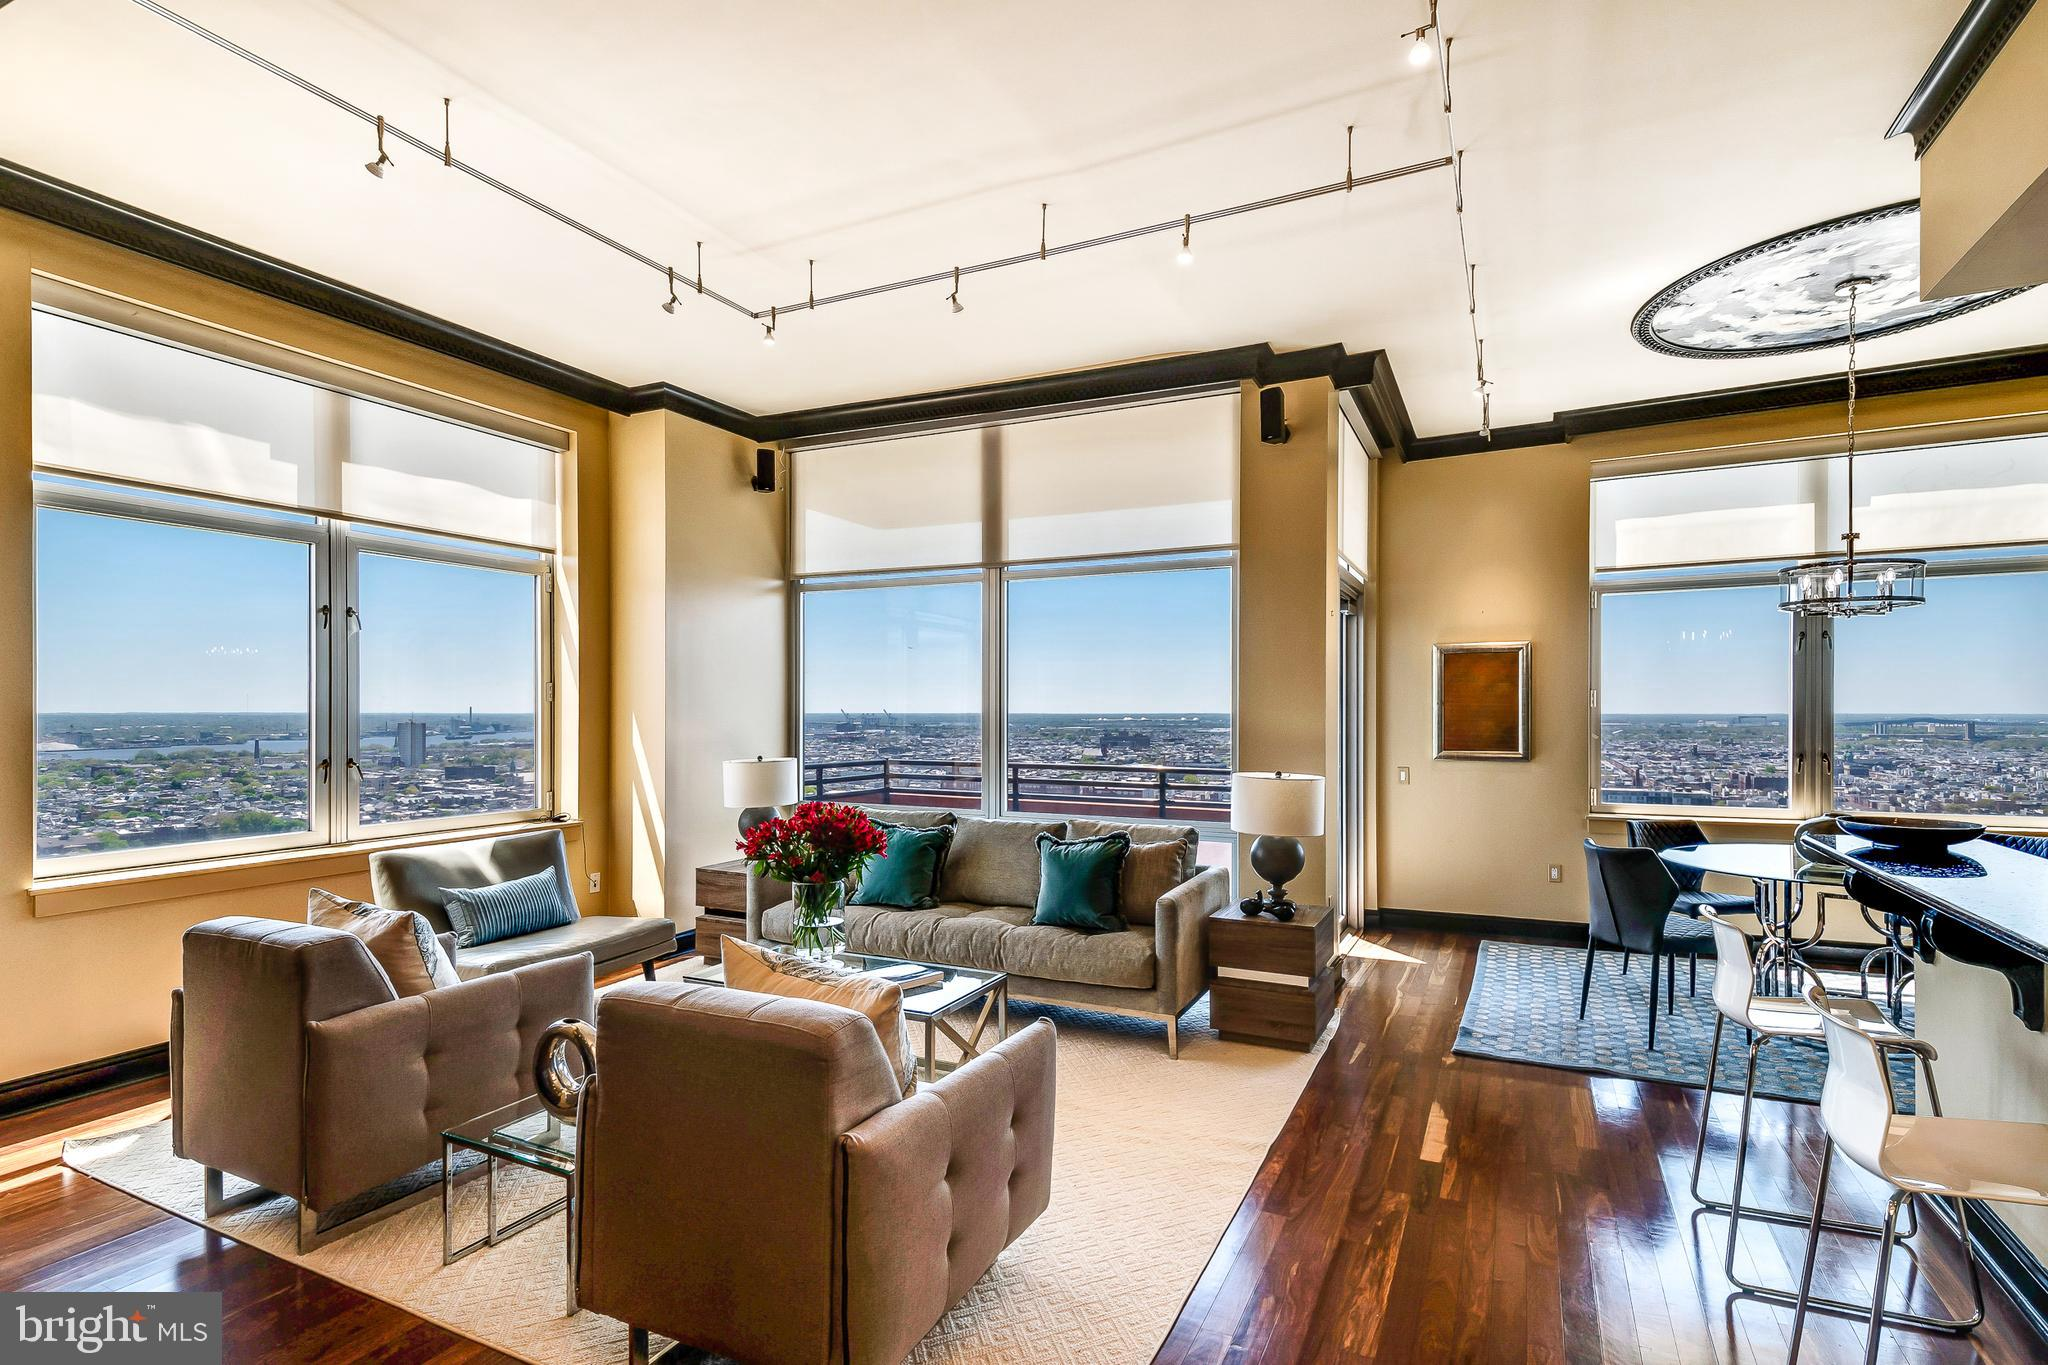 This stunningly elegant two bedroom, 2.5 bath residence gifts simply inspired views from the soaring 28th floor of prestigious Symphony House. Offering a rare expanded corner floor plan and seamless open concept living, Suite 2804 is ideal for those seeking more expansive live space and the gracious room to entertain. The entry gallery with tray ceiling makes an immediate statement upon entering the residence, as you are struck by the lofty 12' ceilings and an abundance of natural light.  The main live space is flanked by oversized windows framing a breathtaking city, bridge, river and Avenue of the Arts panoramic.  Step onto the private balcony for fresh air and sunshine, a morning coffee or evening glass of wine at sunset.  Anchoring the opposite end of the main live space, a gorgeous custom built-in wall that is as functional as it is beautiful.  Stylish crown molding, floor to ceiling windows, hardwood floors, and custom window treatments.   An expertly-fitted urban galley kitchen boasts stainless Viking professional appliances, granite countertops, a wine chiller, custom-fitted walk-in pantry, and stylish backsplash.  The private master suite is bright and spacious with an expansive fitted walk-in, large secondary closet, and moderne bath with dual sink, oversized shower and custom cabinetry and lighting.  On the opposite corner of the residence sits a dramatic guest suite with commanding river views that will catch your breath, adorned with  wonderful built-ins perfect for a transitional home office.  The guest suite also offers a private en-suite bath and plentiful closets.  A simply beautiful, highly-coveted residence, and an exceptional opportunity. Two garage spaces in the building's private garage and a storage locker are included with the residence. Offering unparalleled services and amenities, prestigious Symphony House is the city's premier Avenue of the Arts address boasting 24/7 concierge and doorman, 65' heated indoor lap pool, steam and sauna, stat